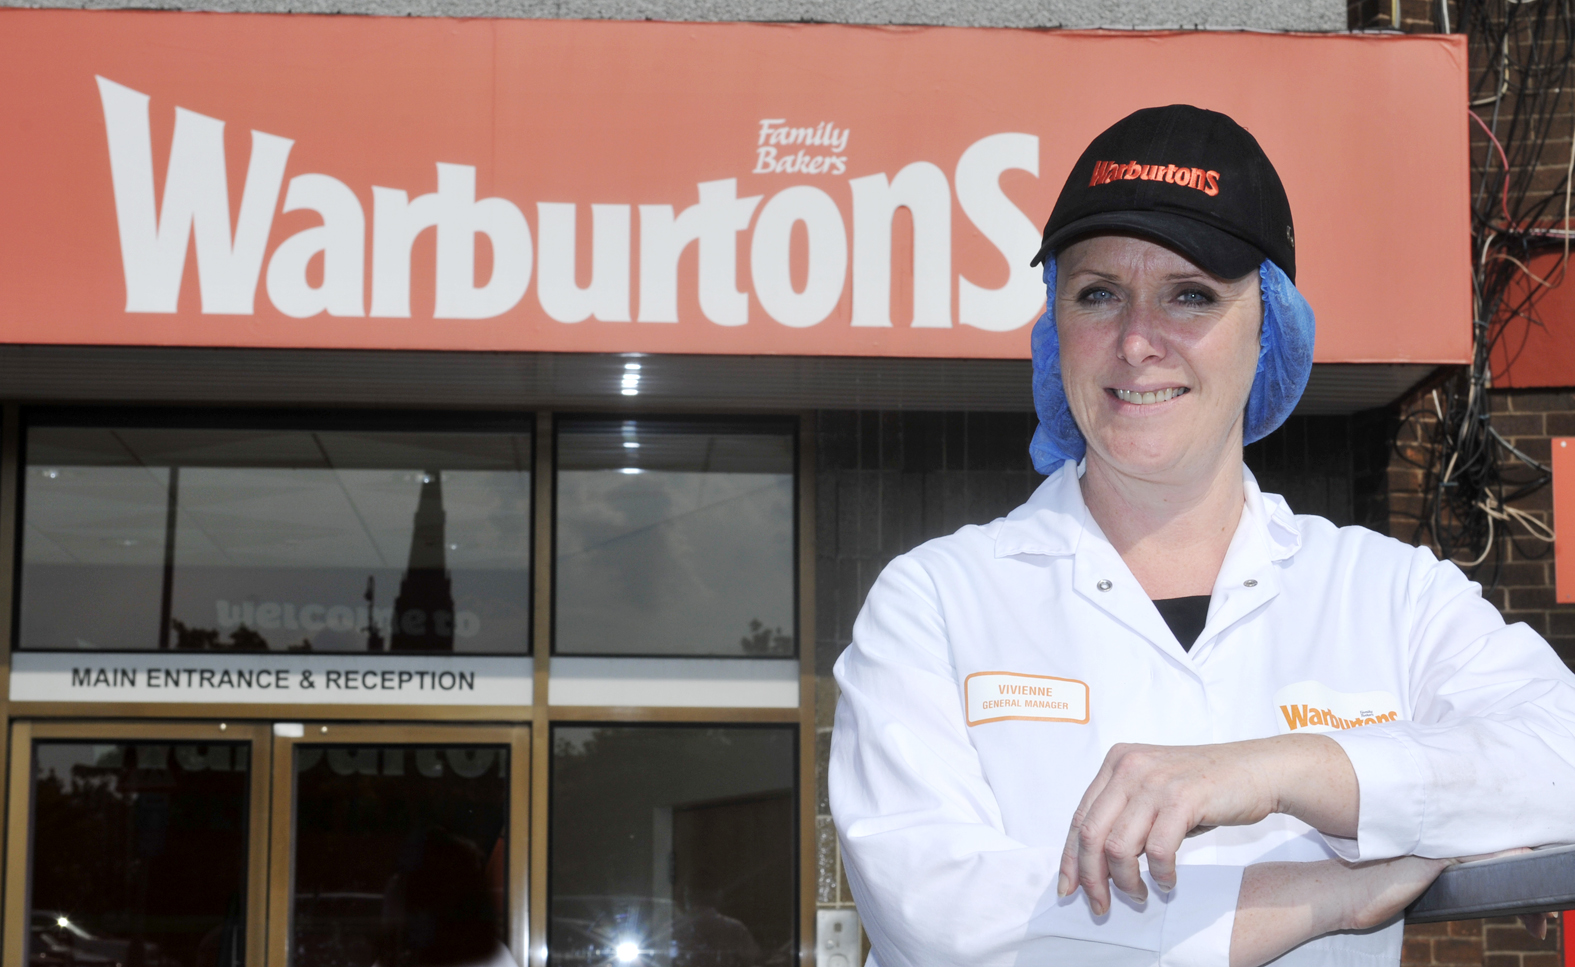 Warburtons stays true to its family roots